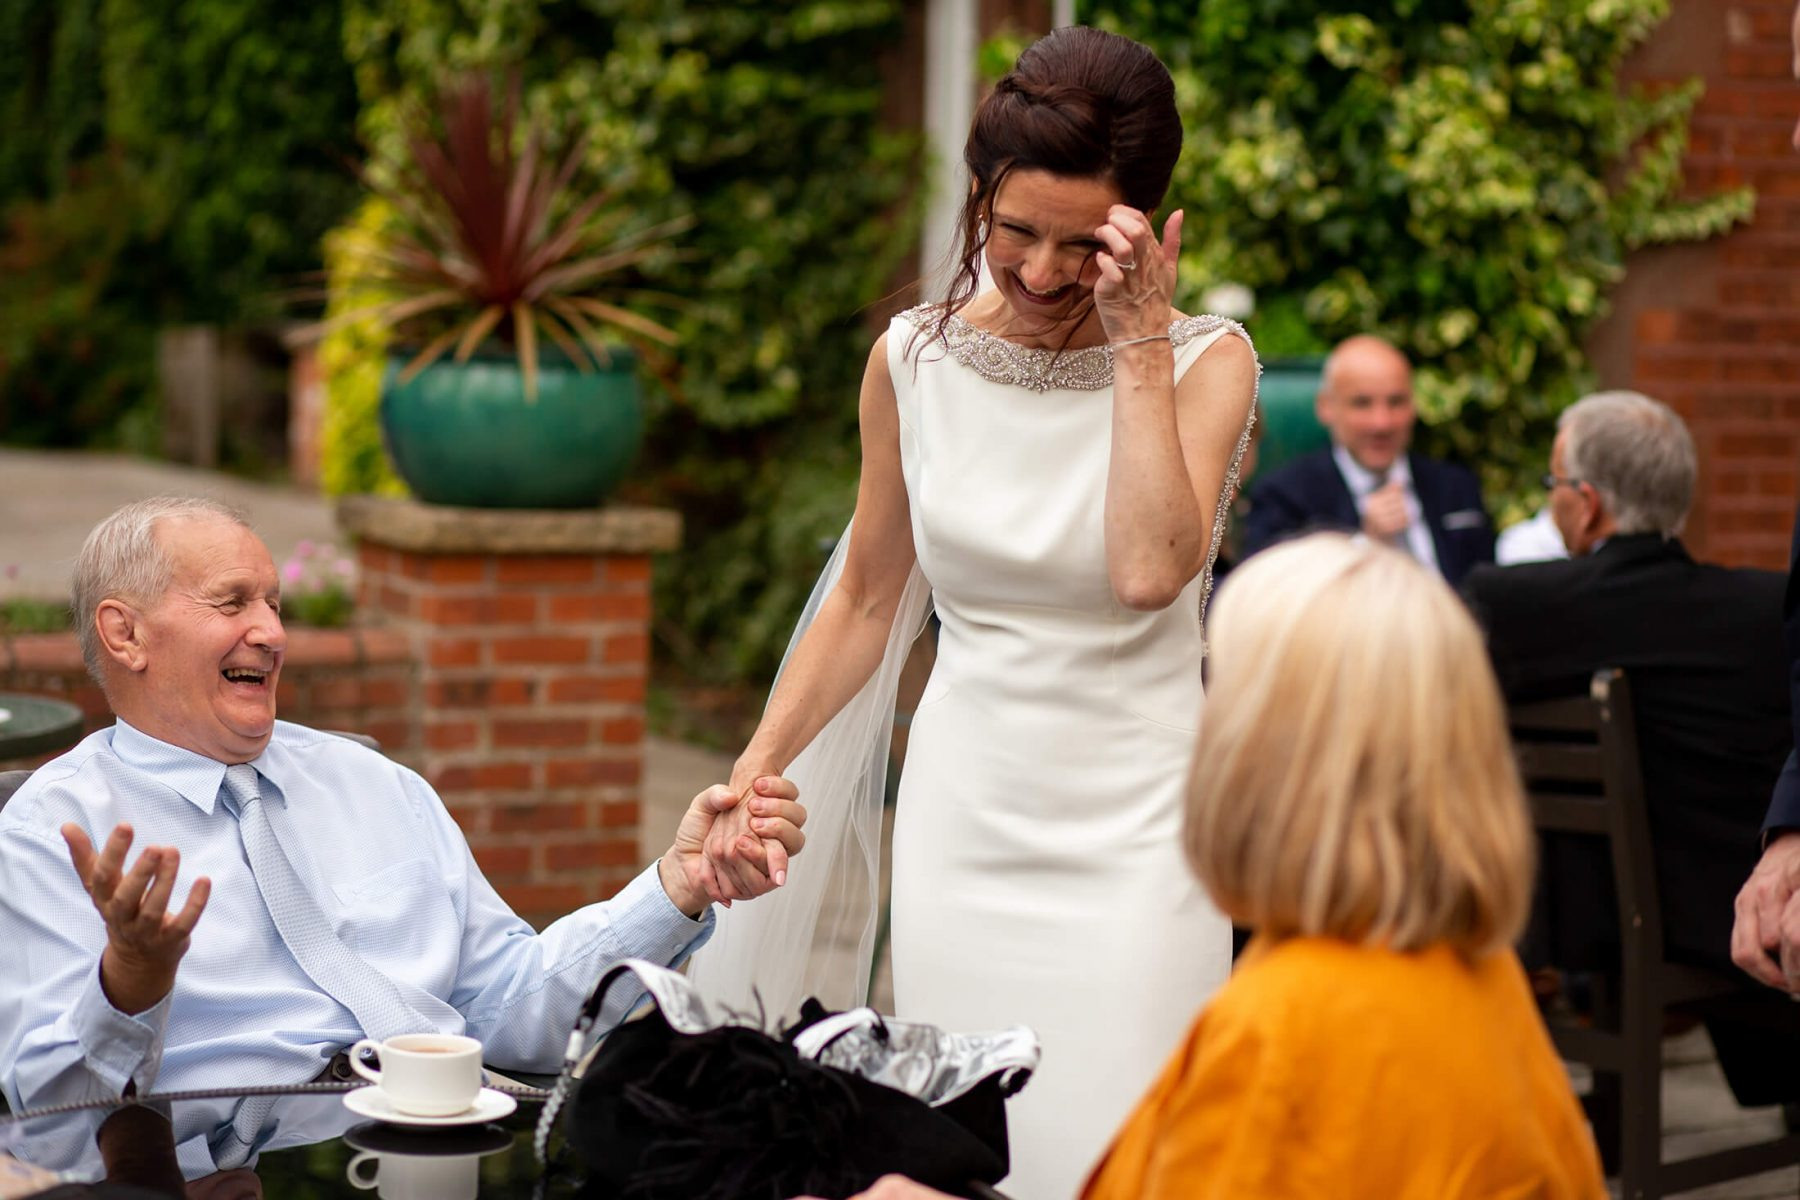 The bride laughs with a wedding guest